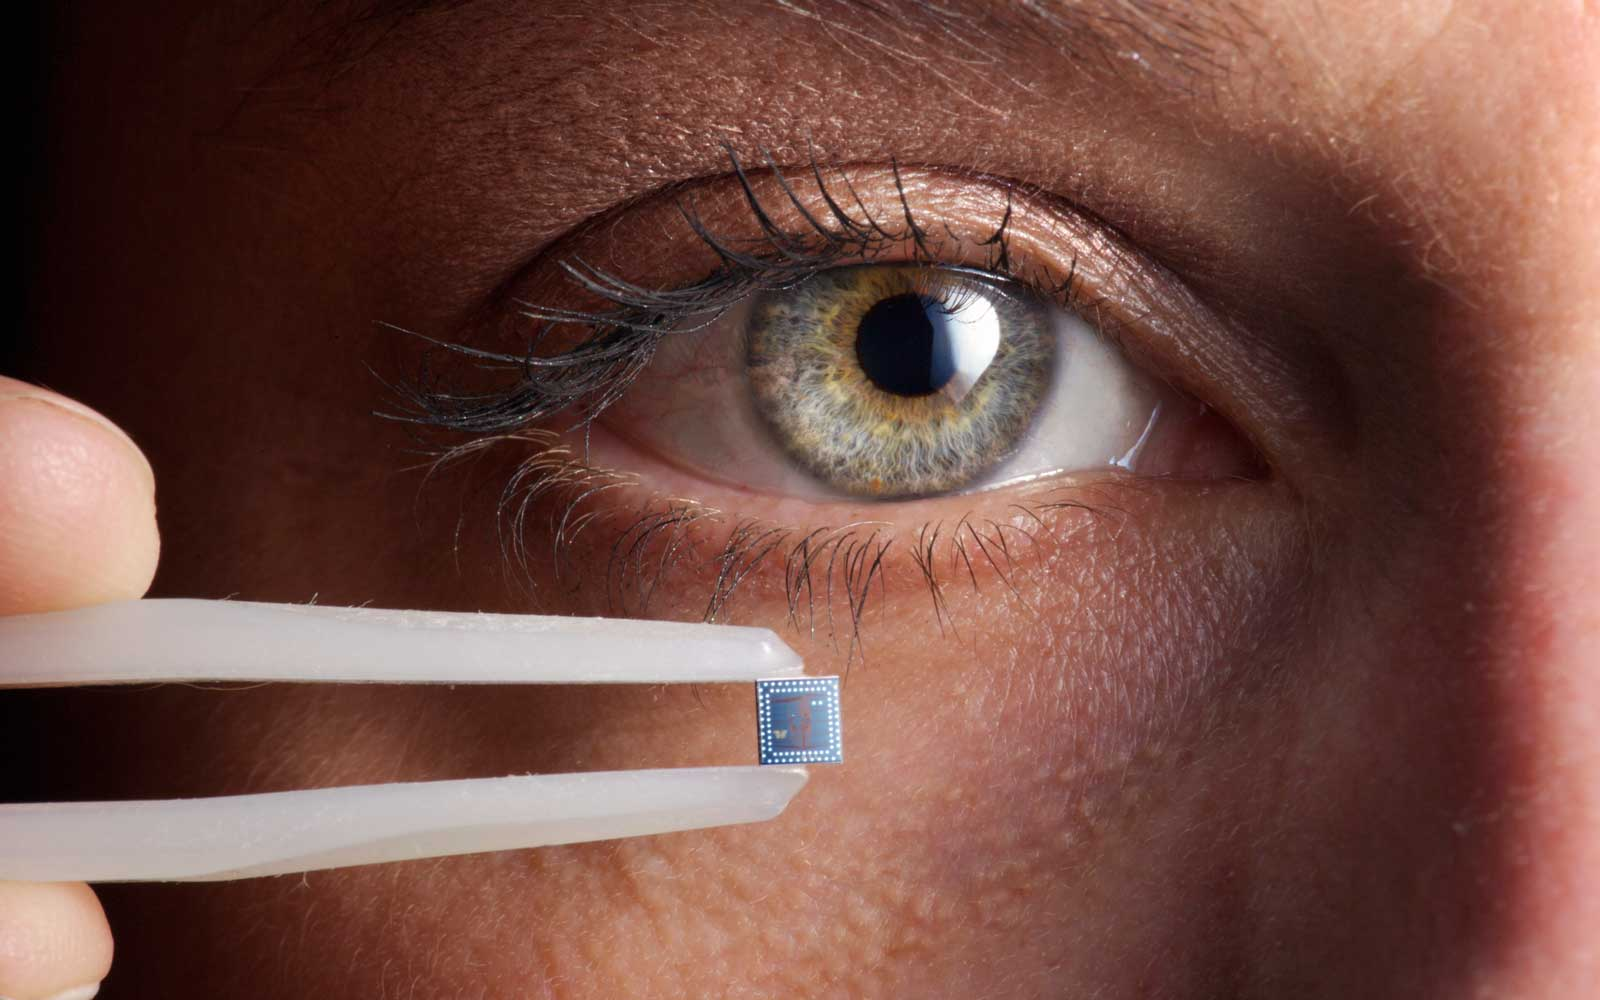 A U.S. Company Is Implanting Microchips Into Its Employees